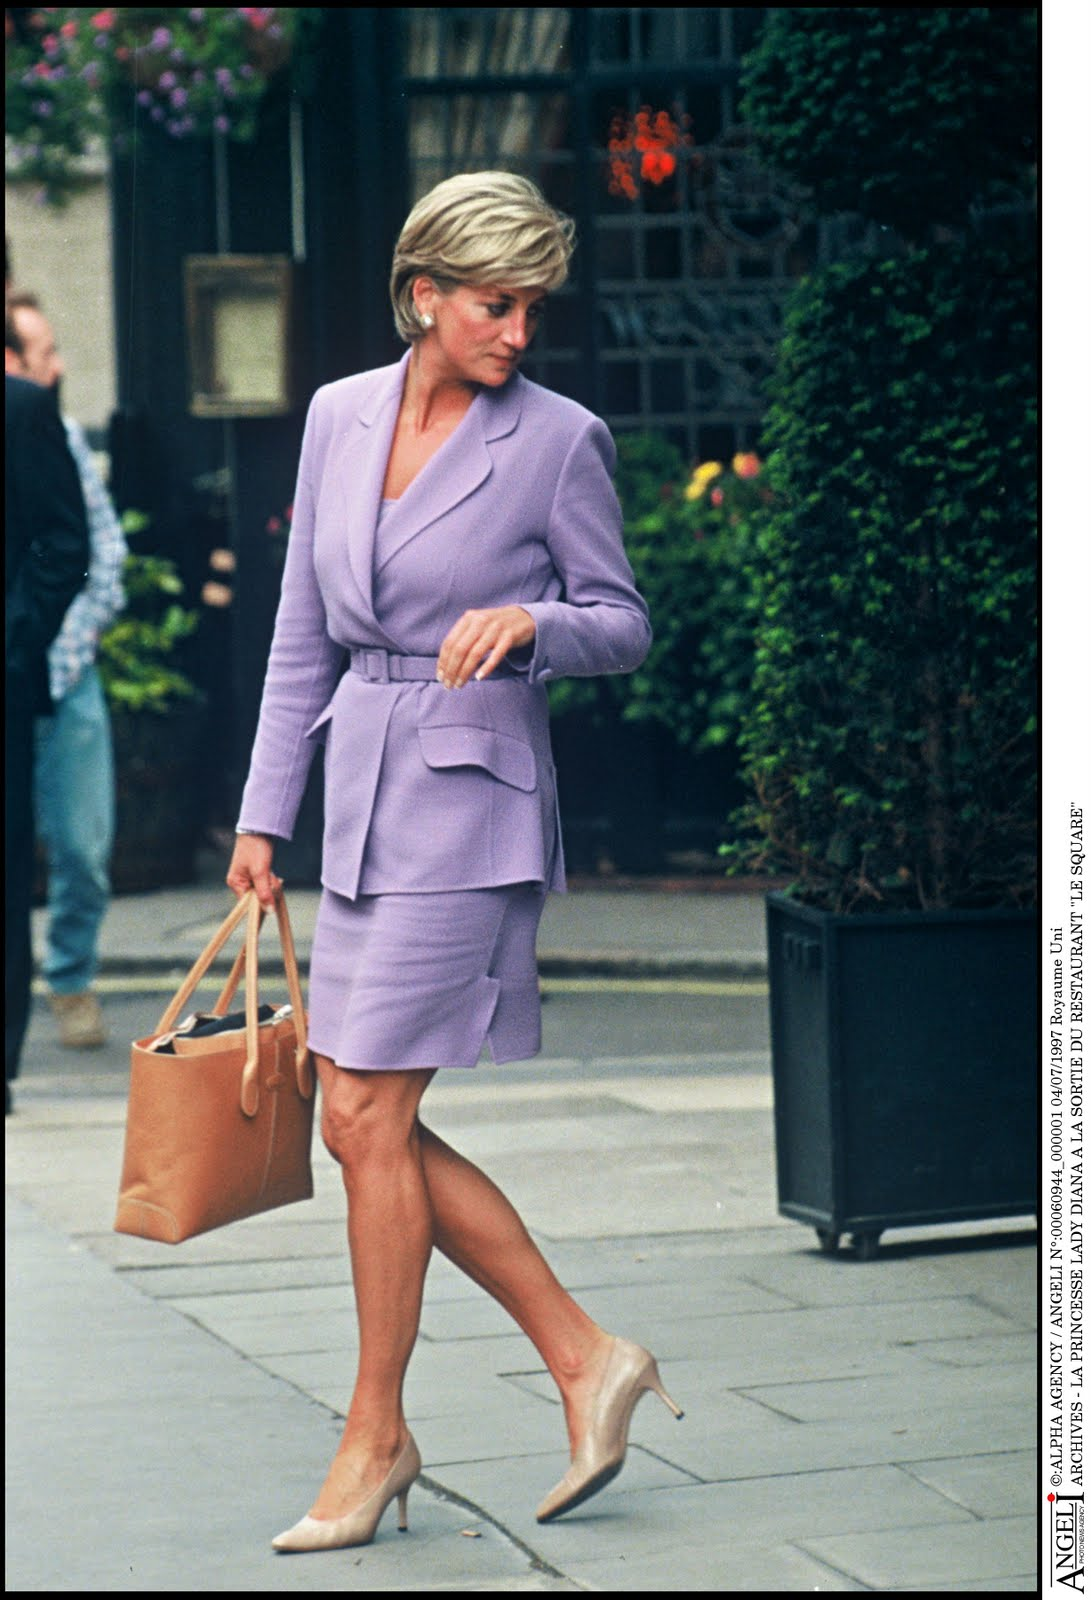 princess diana fashion and style icon photo c getty images 0165 dianalegacy latest update news images videos of british royal family dianalegacy